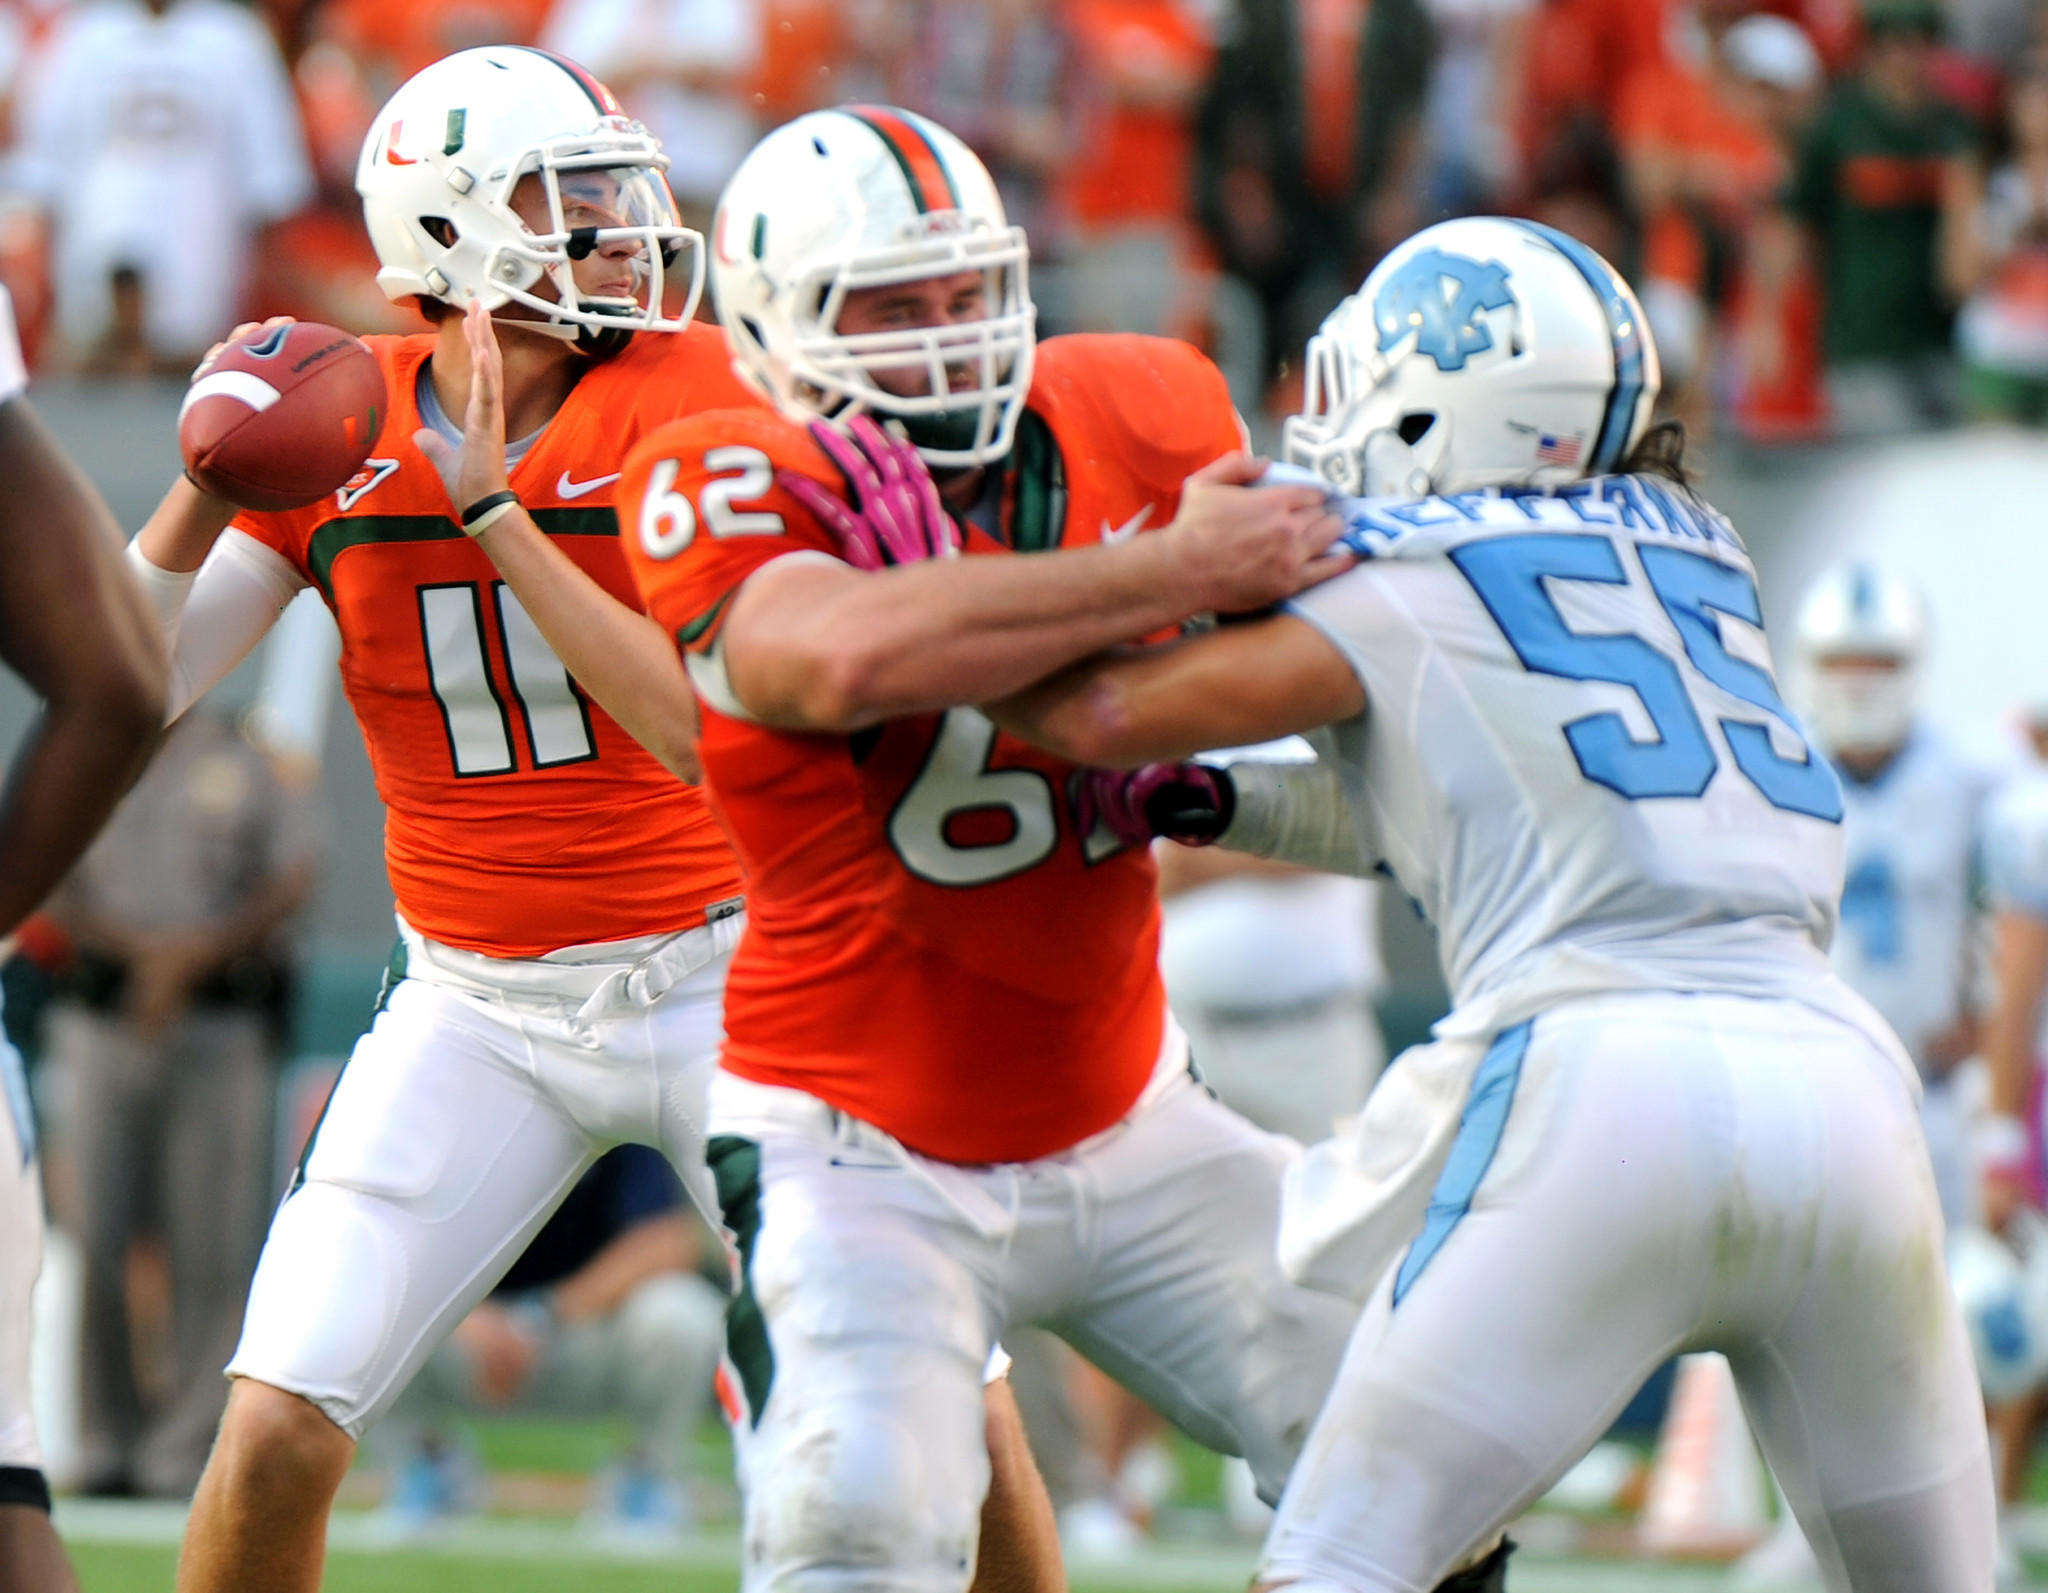 University of Miami quarterback Ryan Williams took over the offense against North carolina after Stephen Morris left the game with an injured ankle.